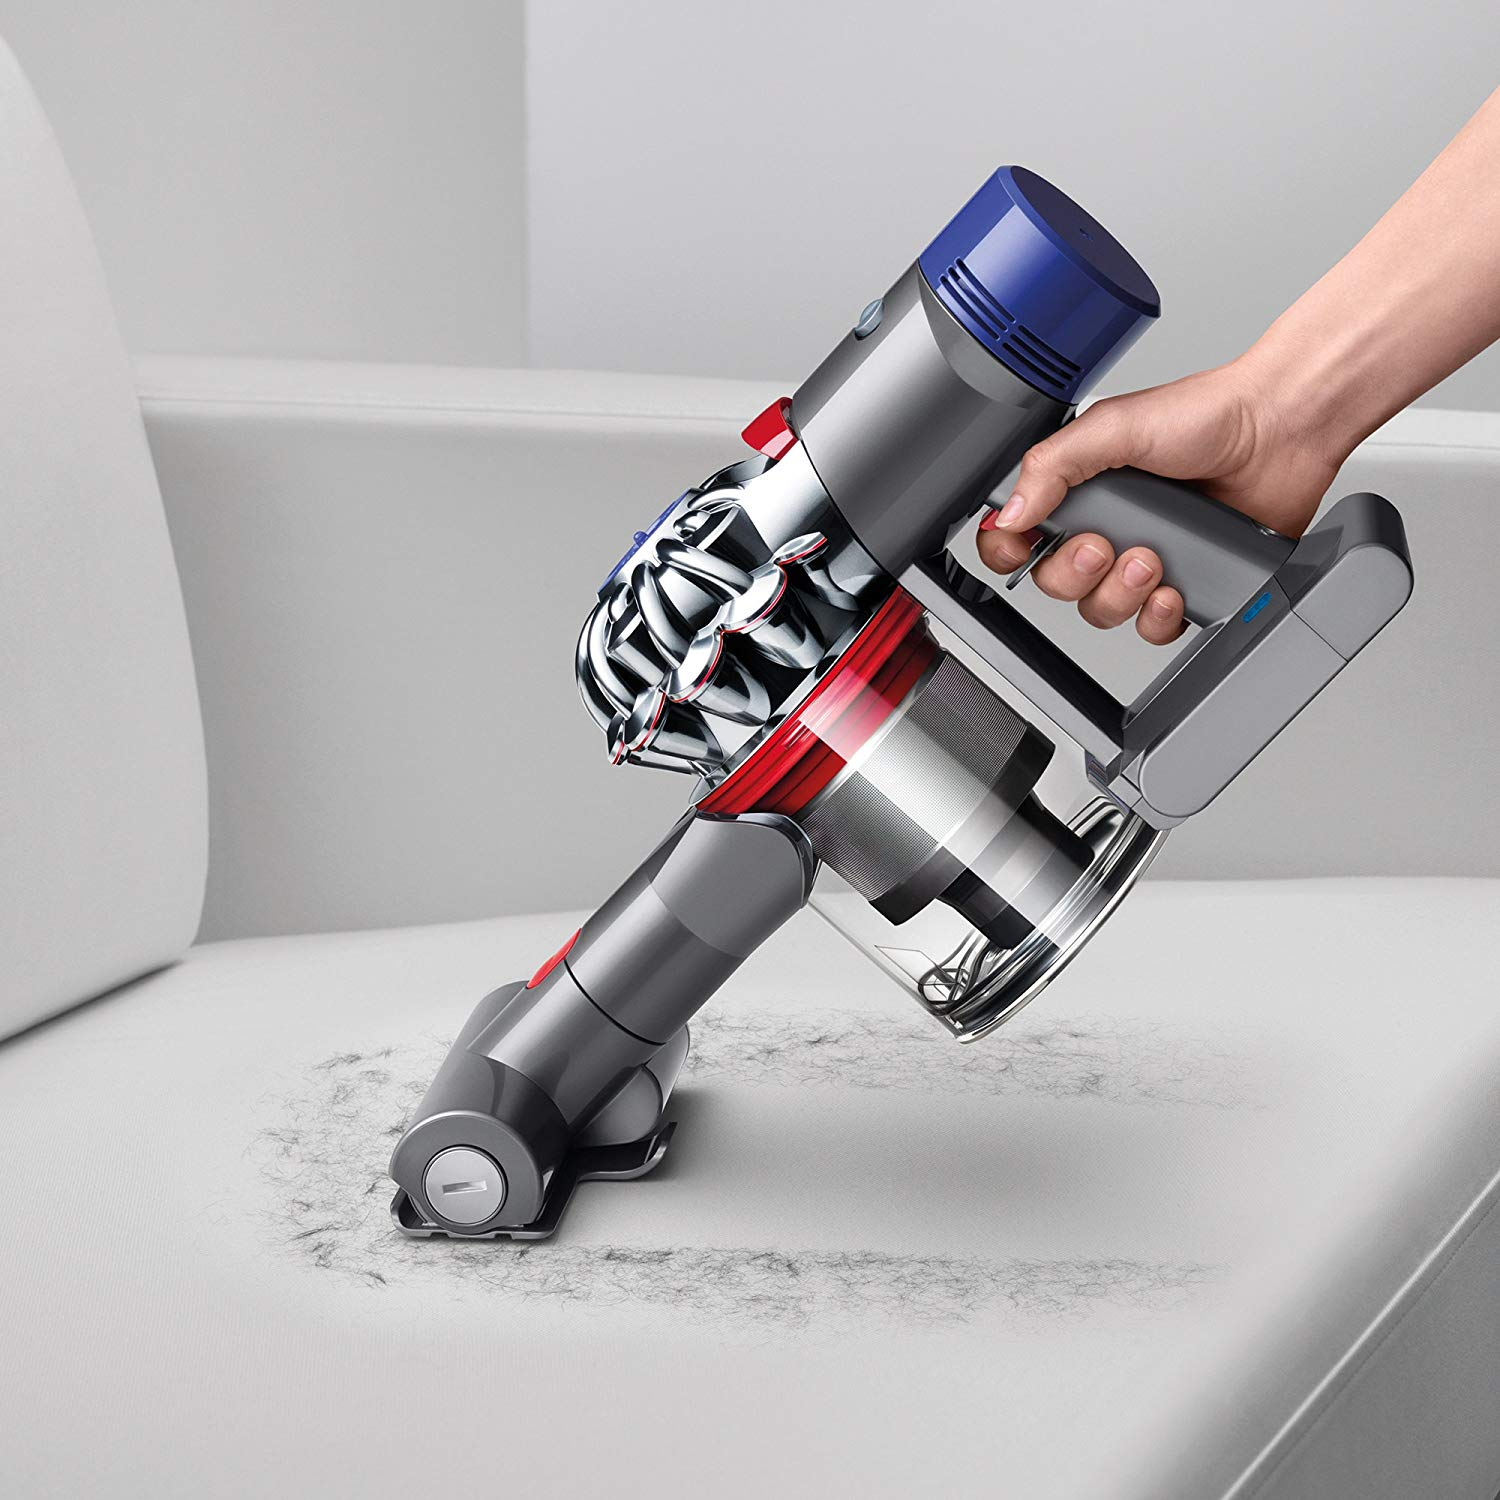 picture of dyson v7 animal cordless stick vacuum cleaning grey couch